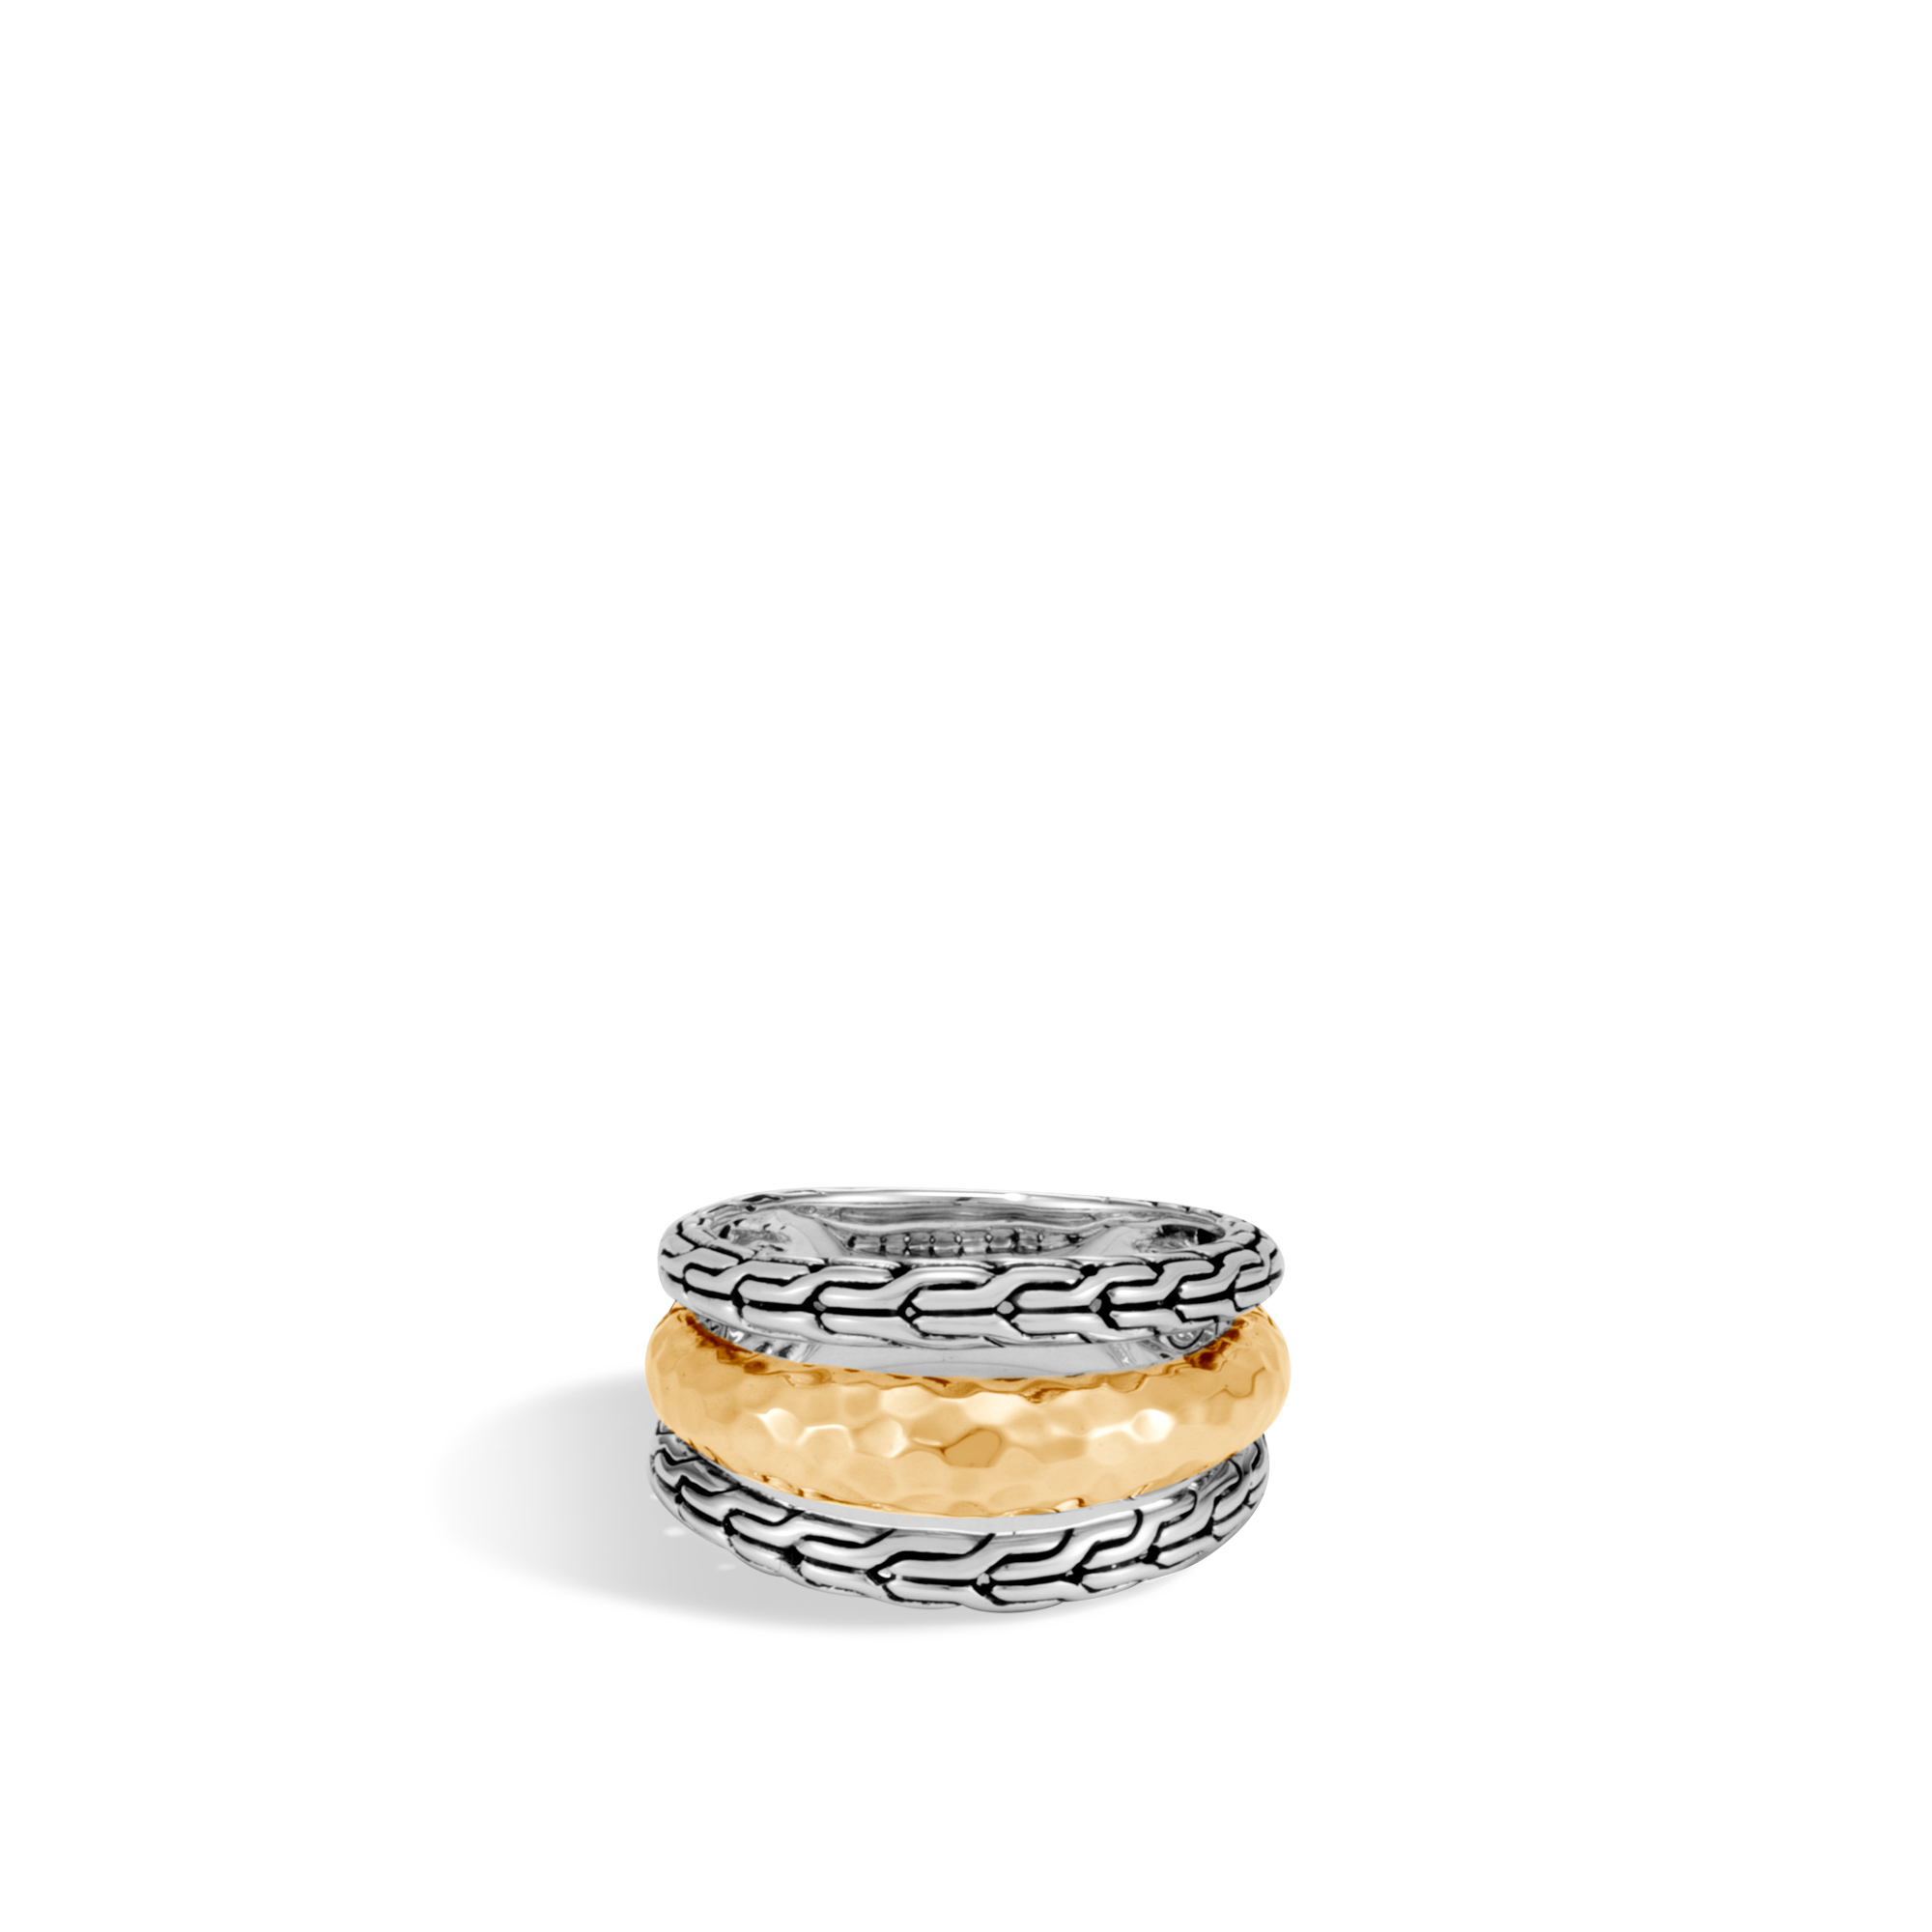 Classic Chain Ring in Silver and Hammered 18K Gold, , large